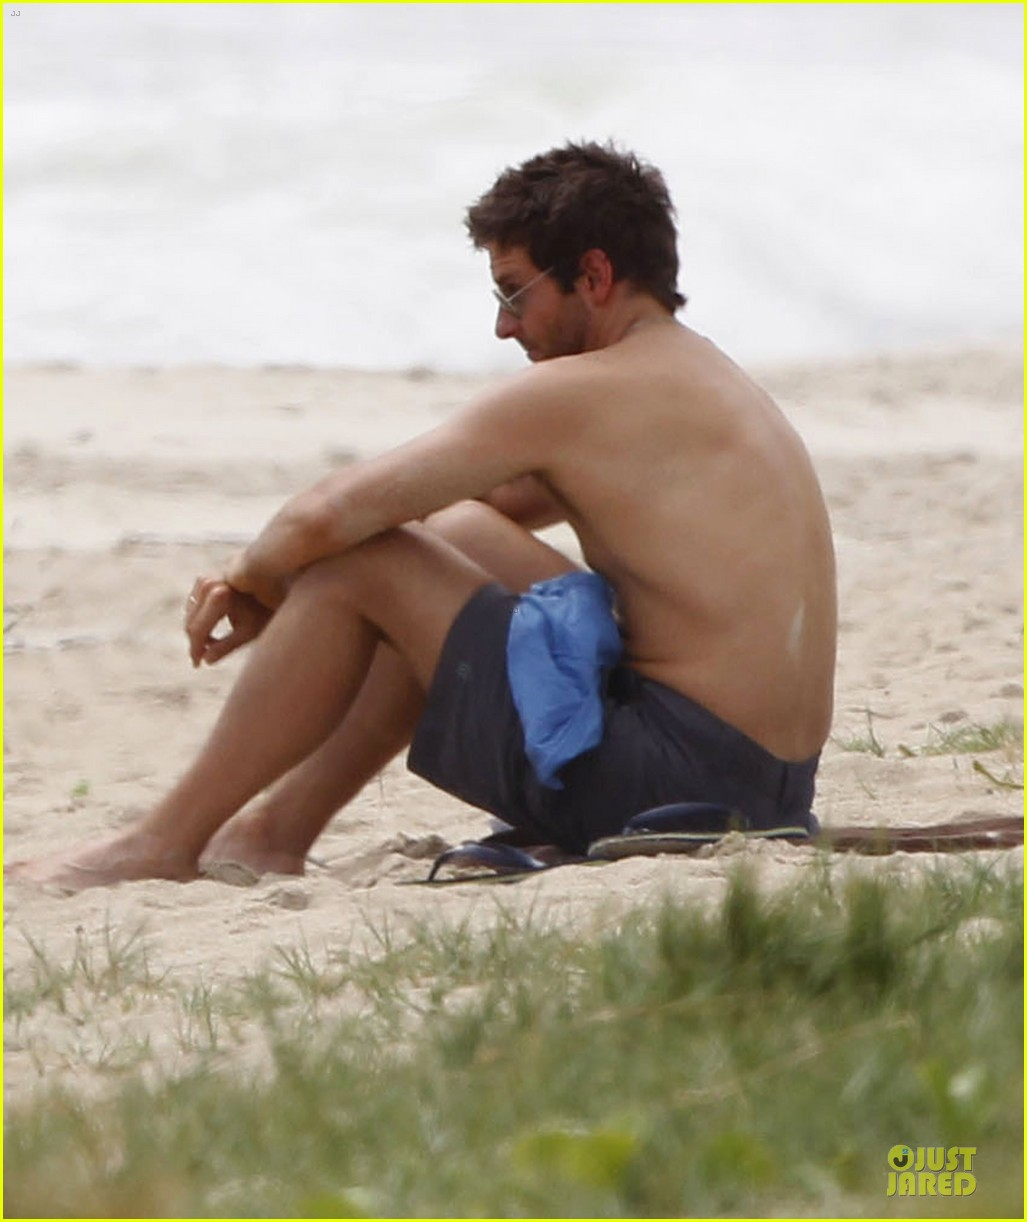 bradley cooper shirtless relaxing beach stud in hawaii 132952288